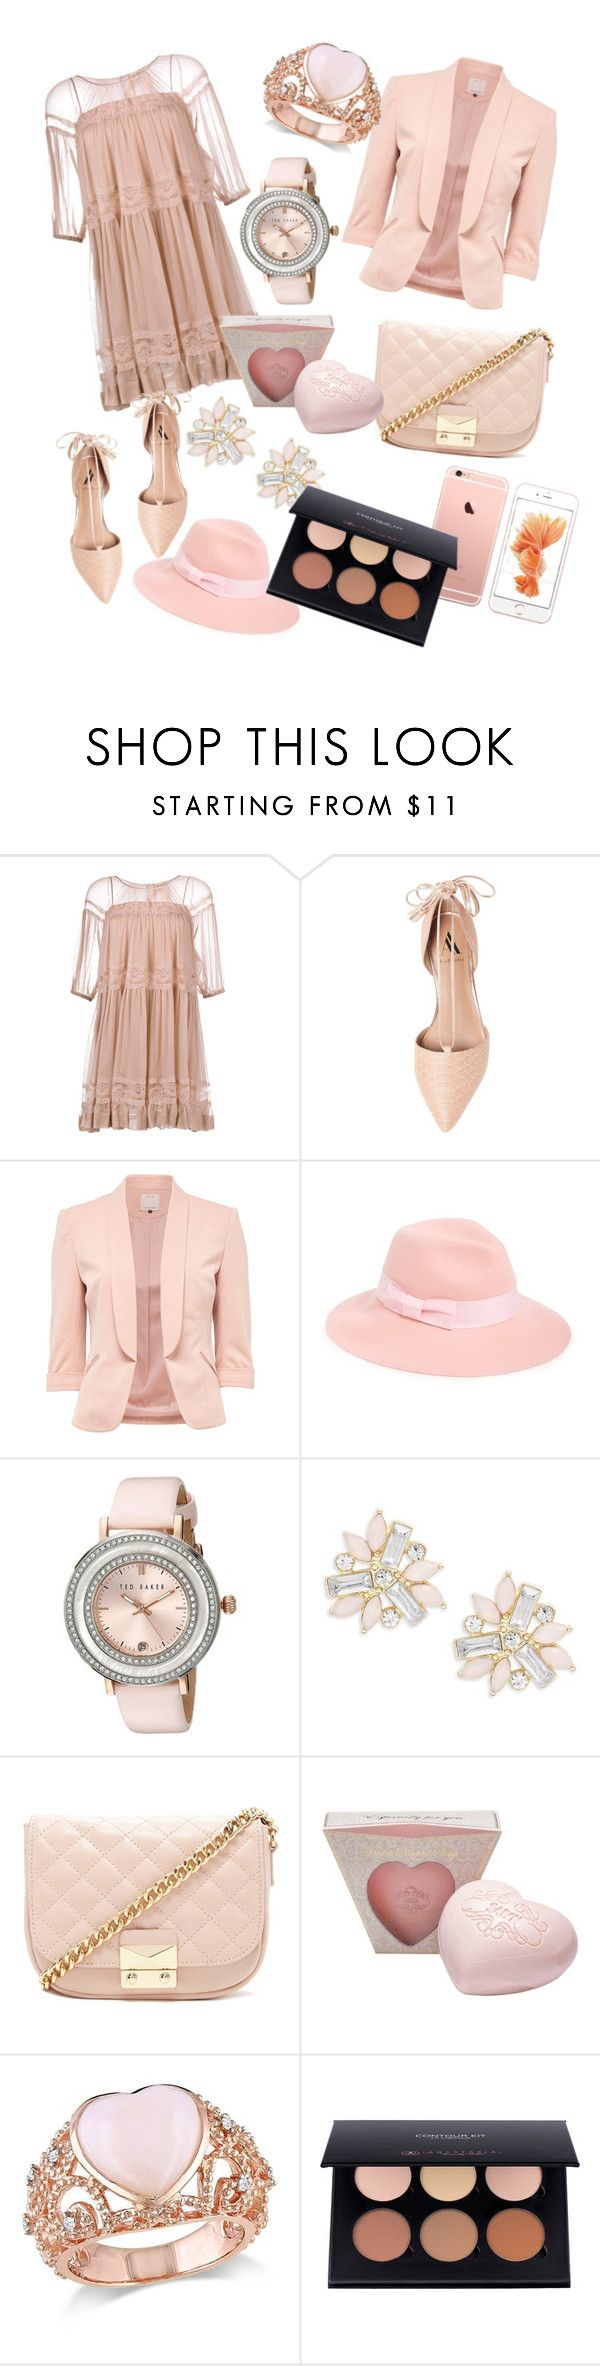 """Untitled #28"" by tokarevabogdana ❤ liked on Polyvore featuring N°21, Ava & Aiden, August Hat, Ted Baker, Cara, Forever 21 and Amour"